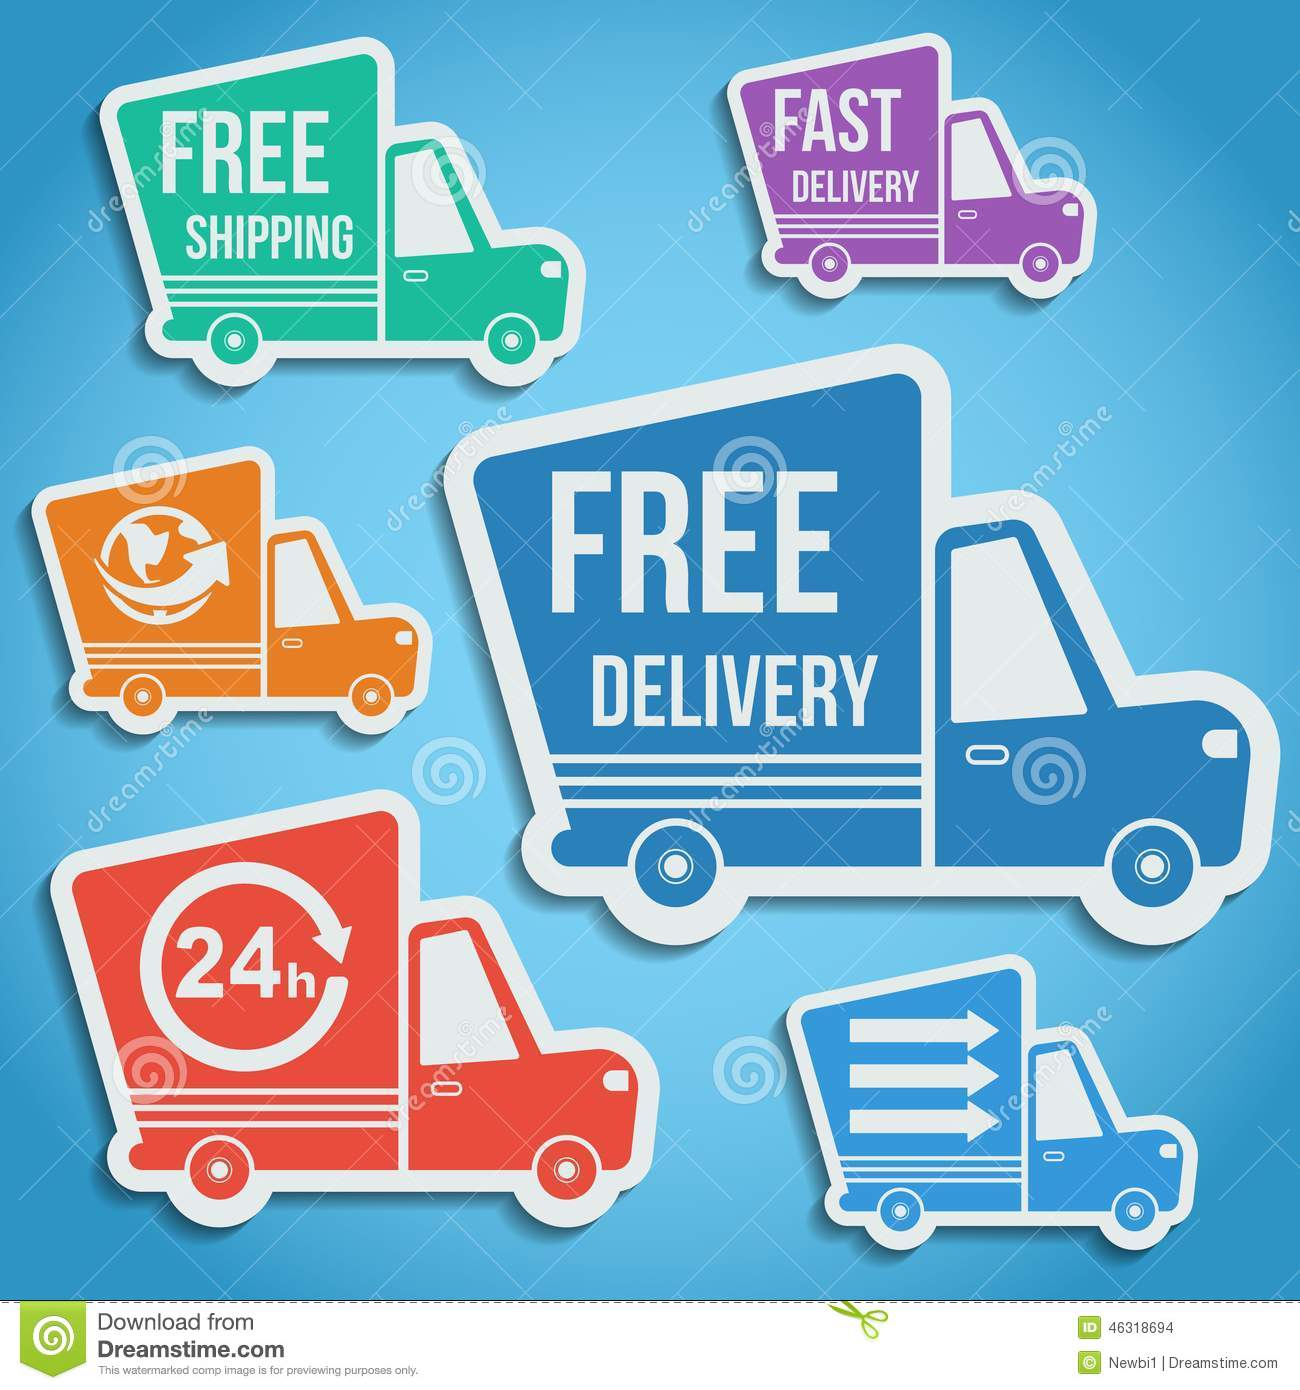 Shipping Delivery: Free Delivery, Fast Delivery Icons Set. Vector. Stock